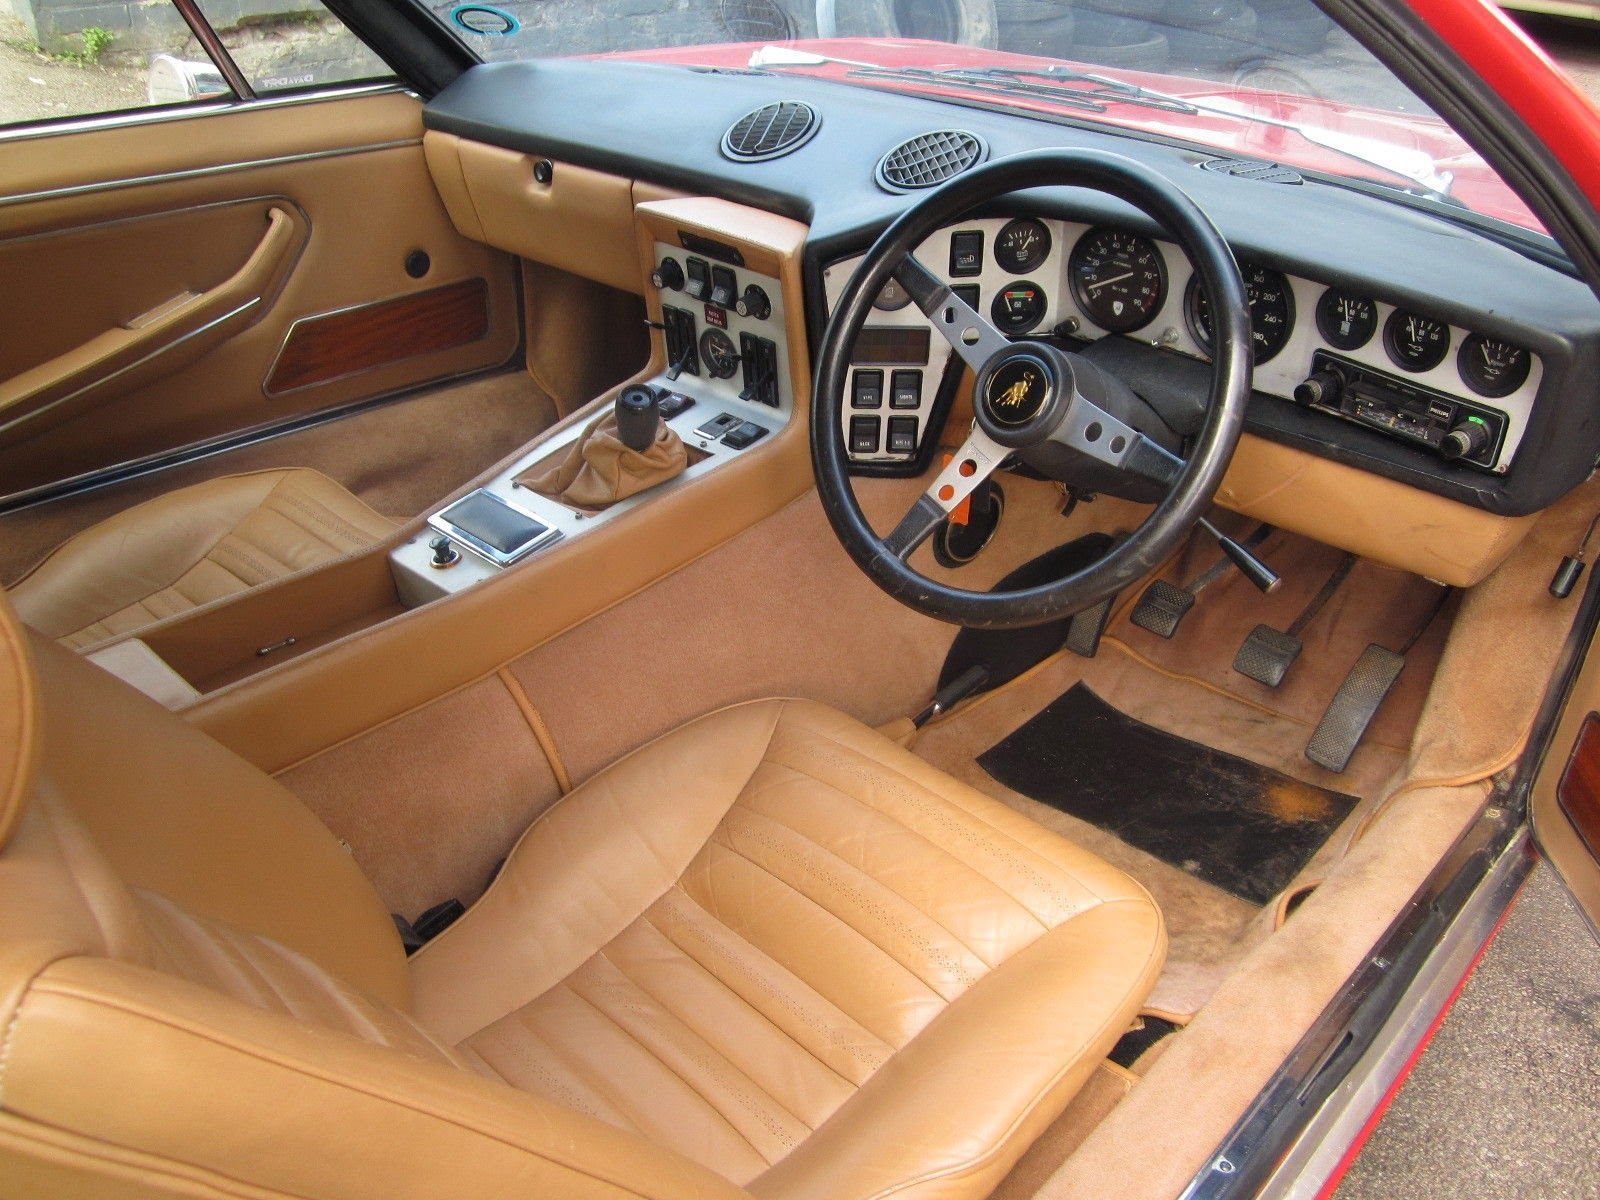 1976 lamborghini espada s3 auto restorationice. Black Bedroom Furniture Sets. Home Design Ideas